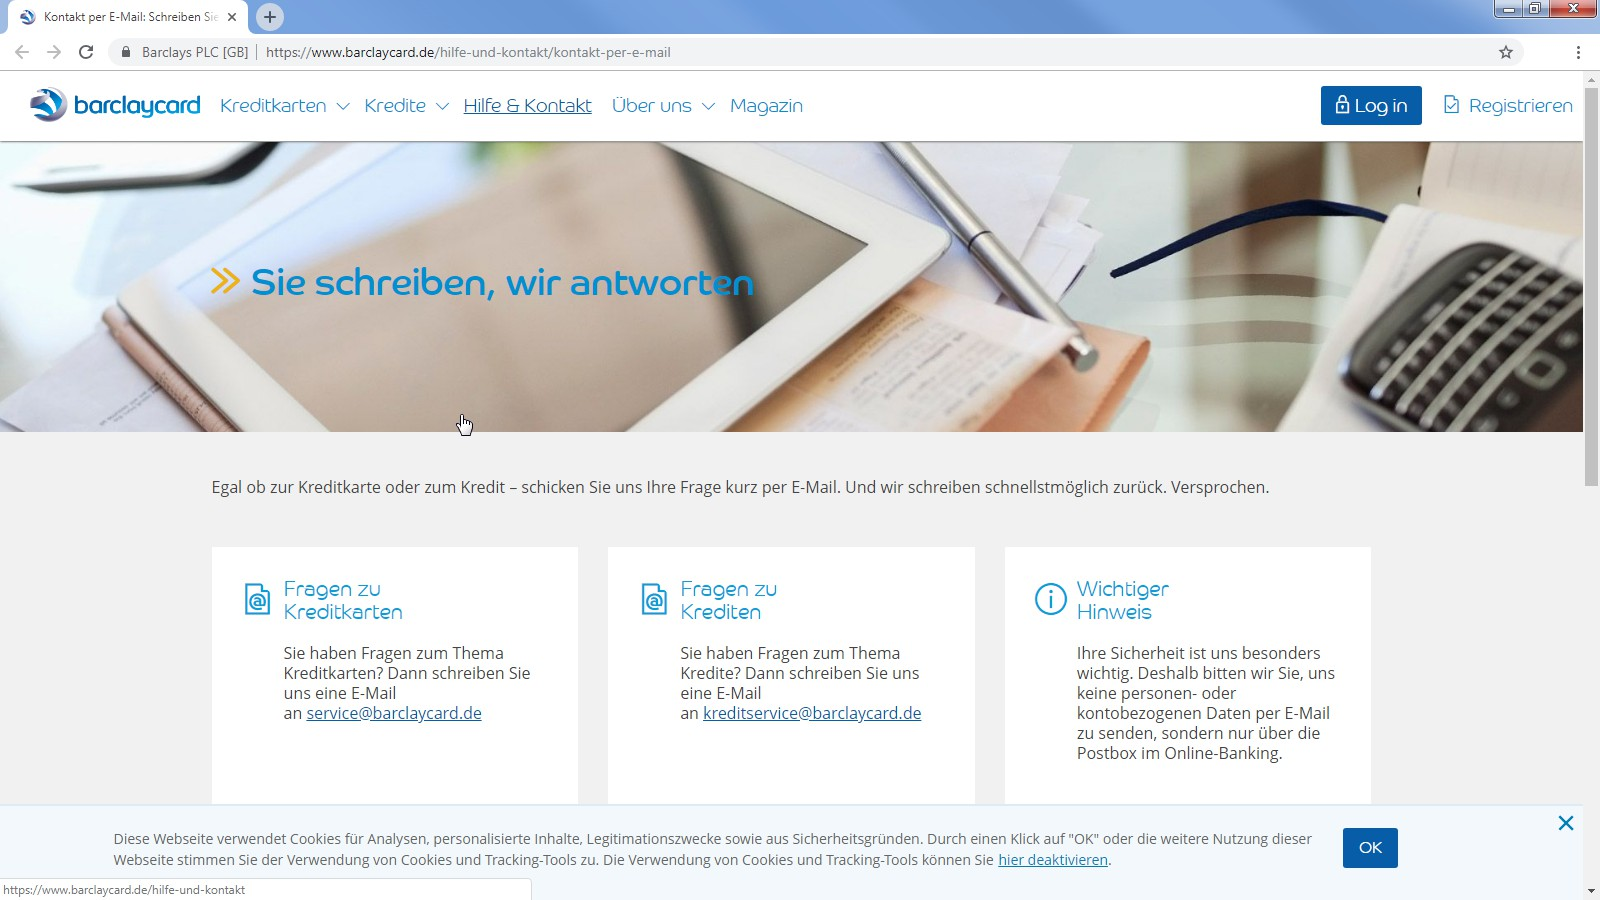 barclaycard customer service contact information and hotline